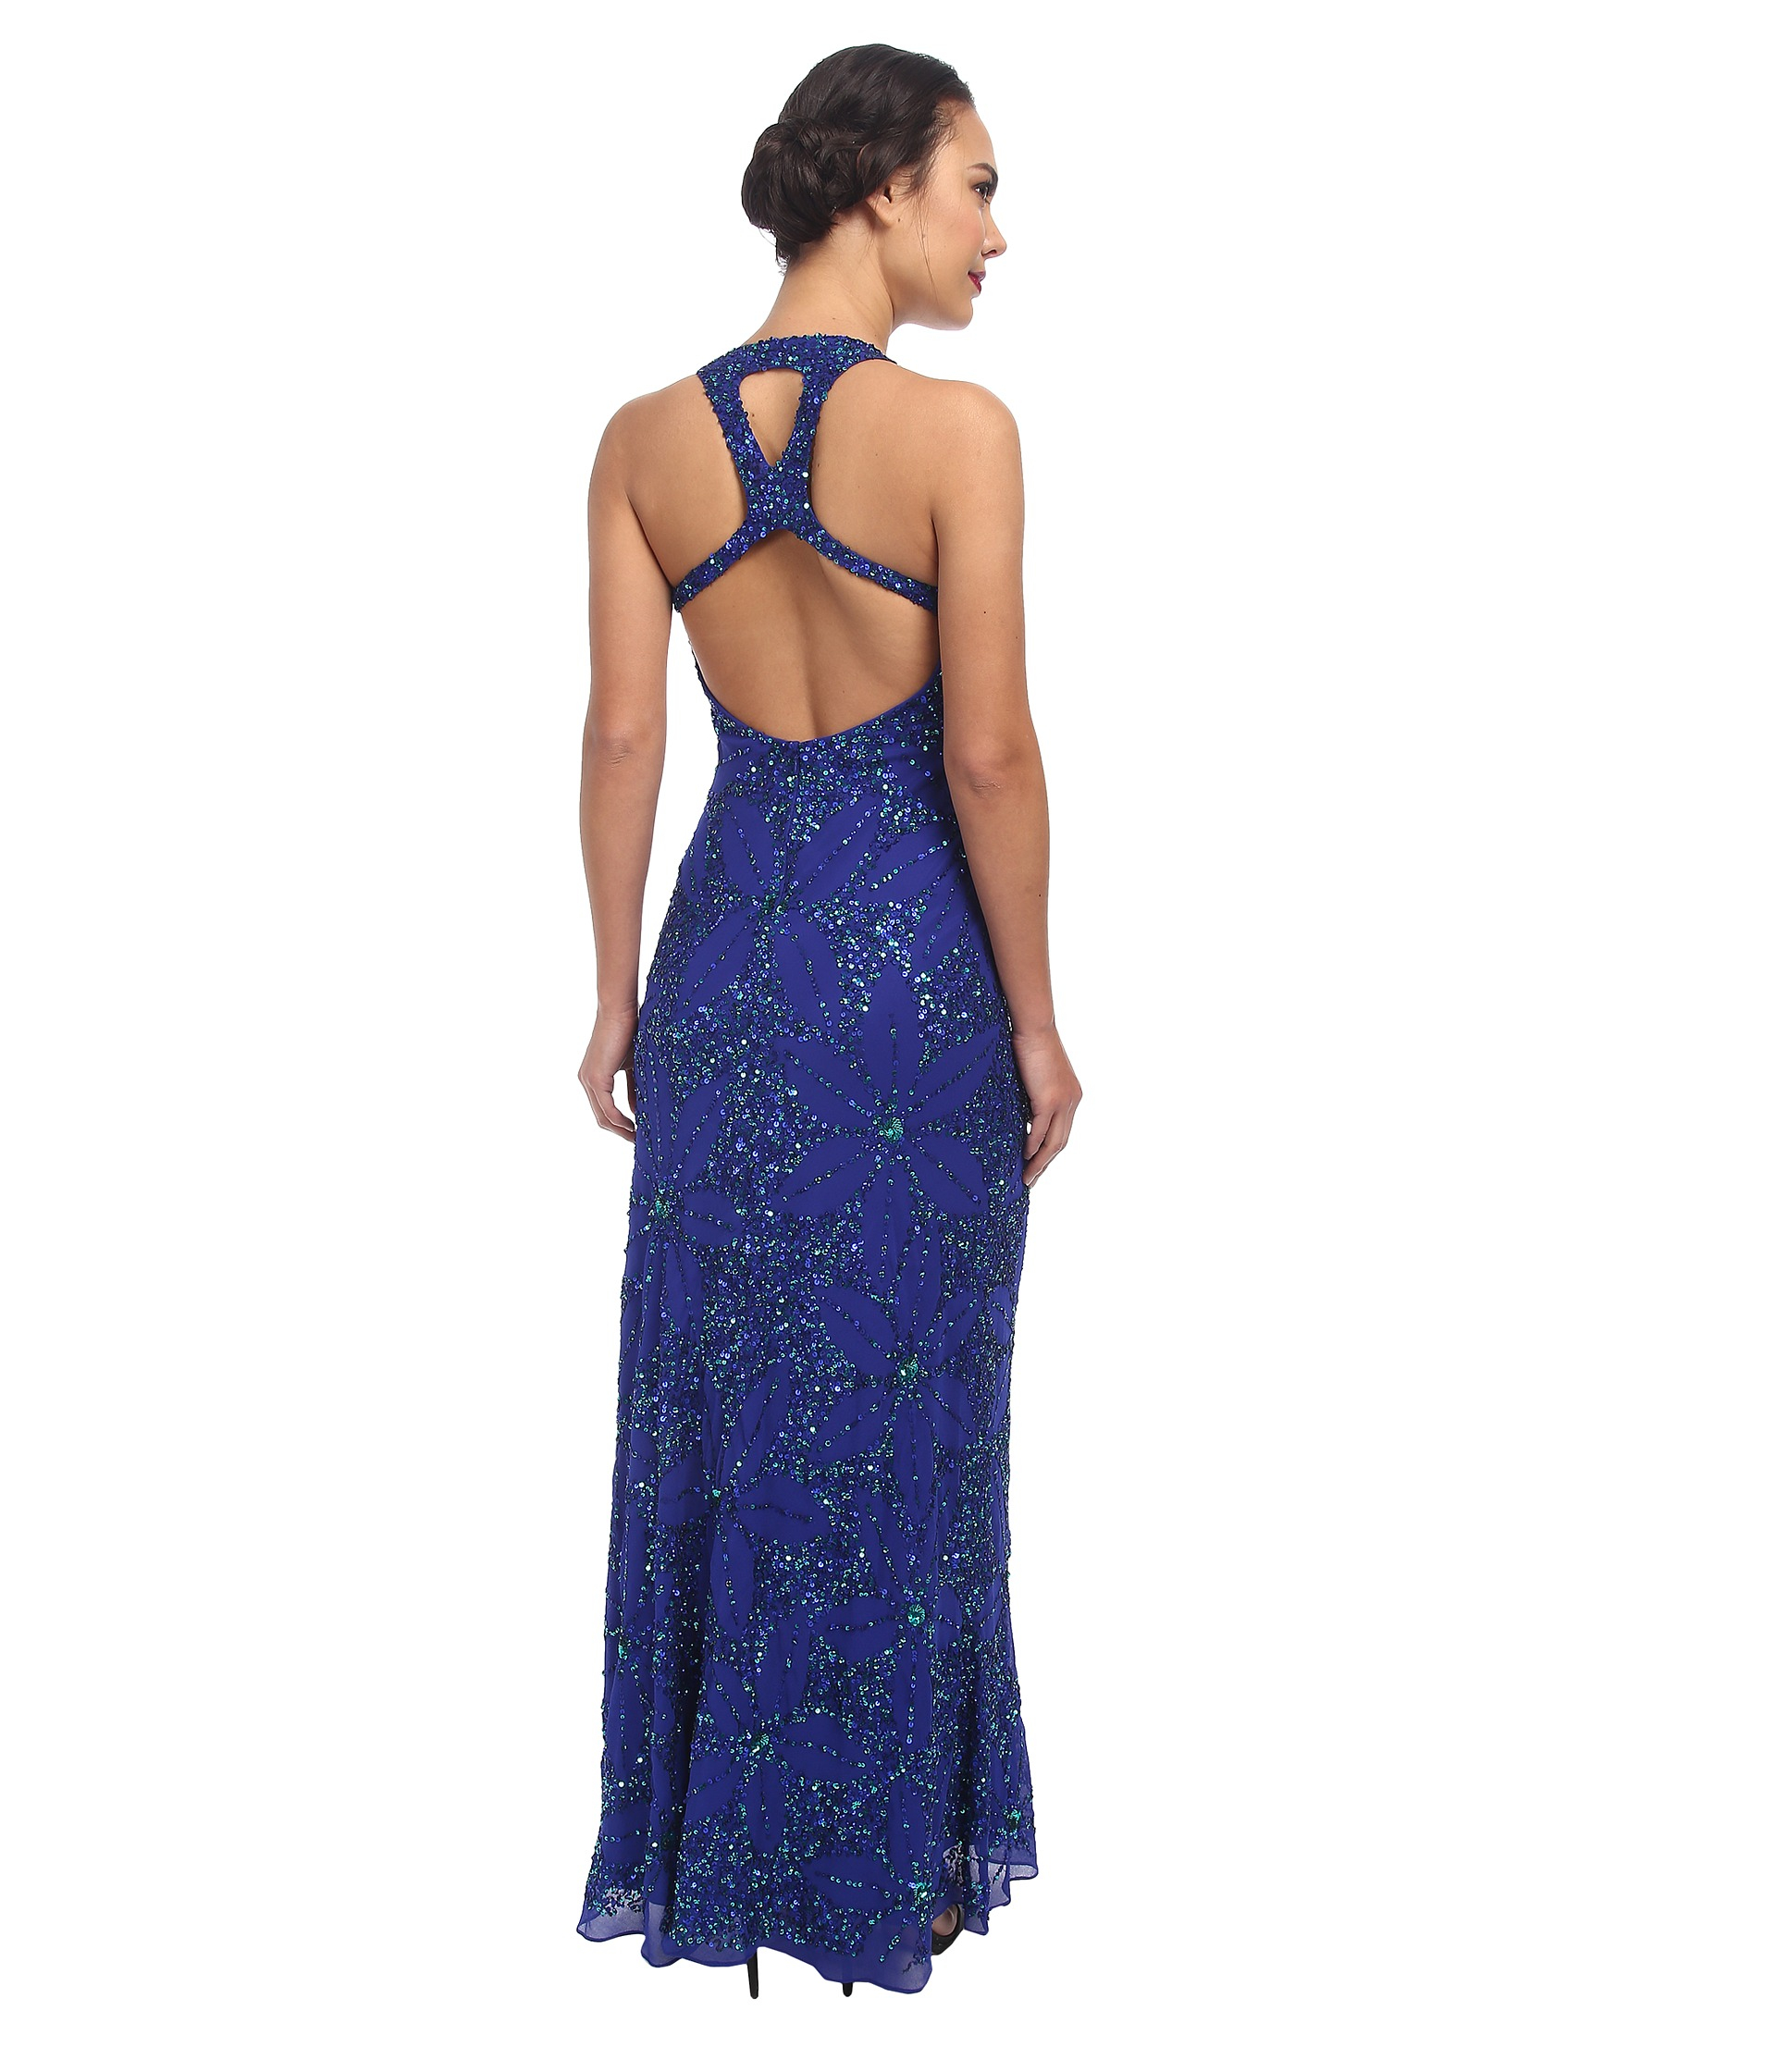 Lyst  Adrianna Papell Dream Girls Bead Prom Gown in Blue